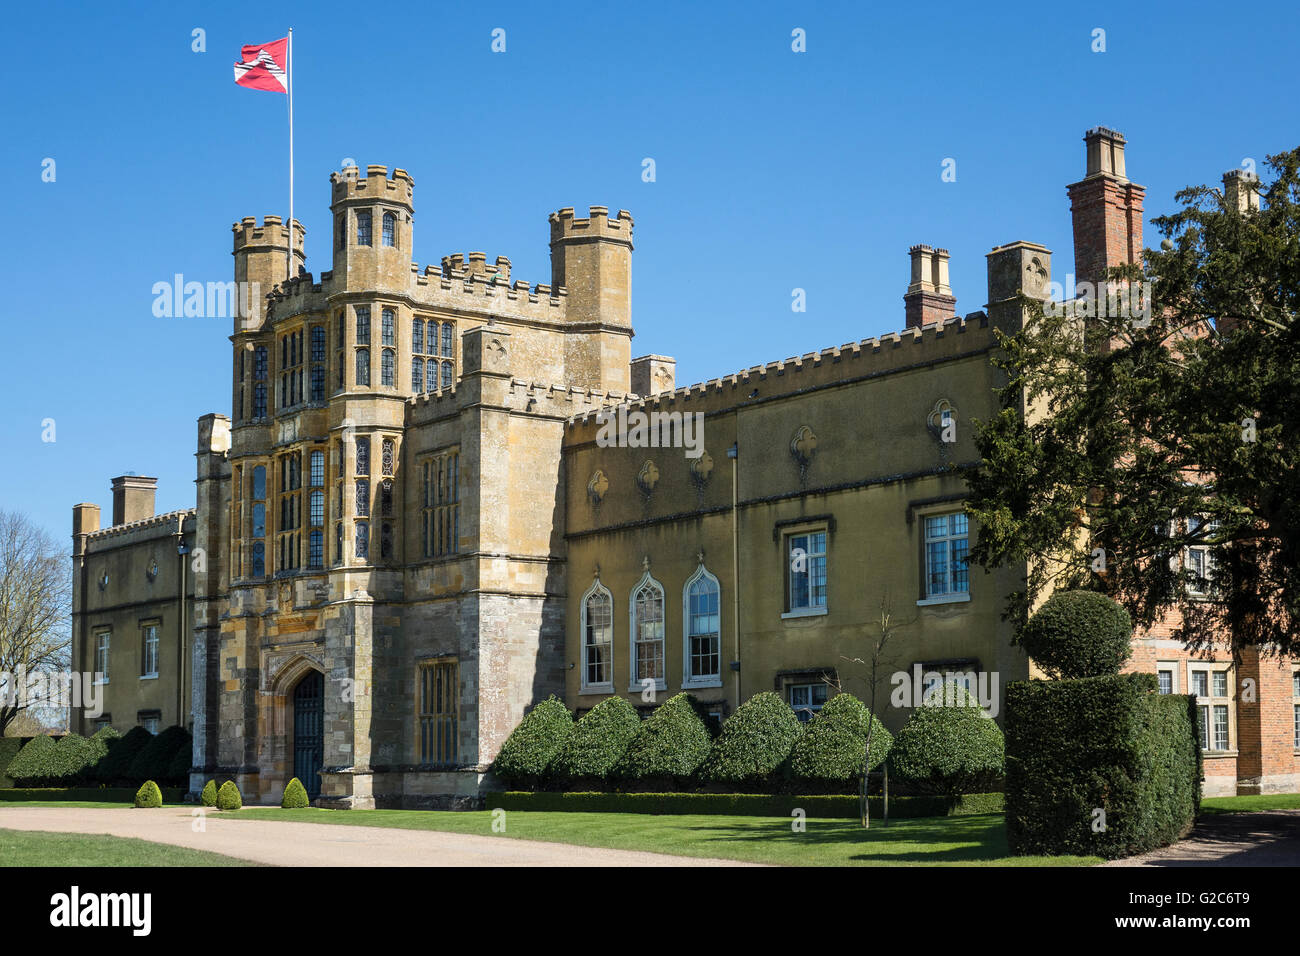 England, Warwickshire, Alcester, Coughton Court - Stock Image